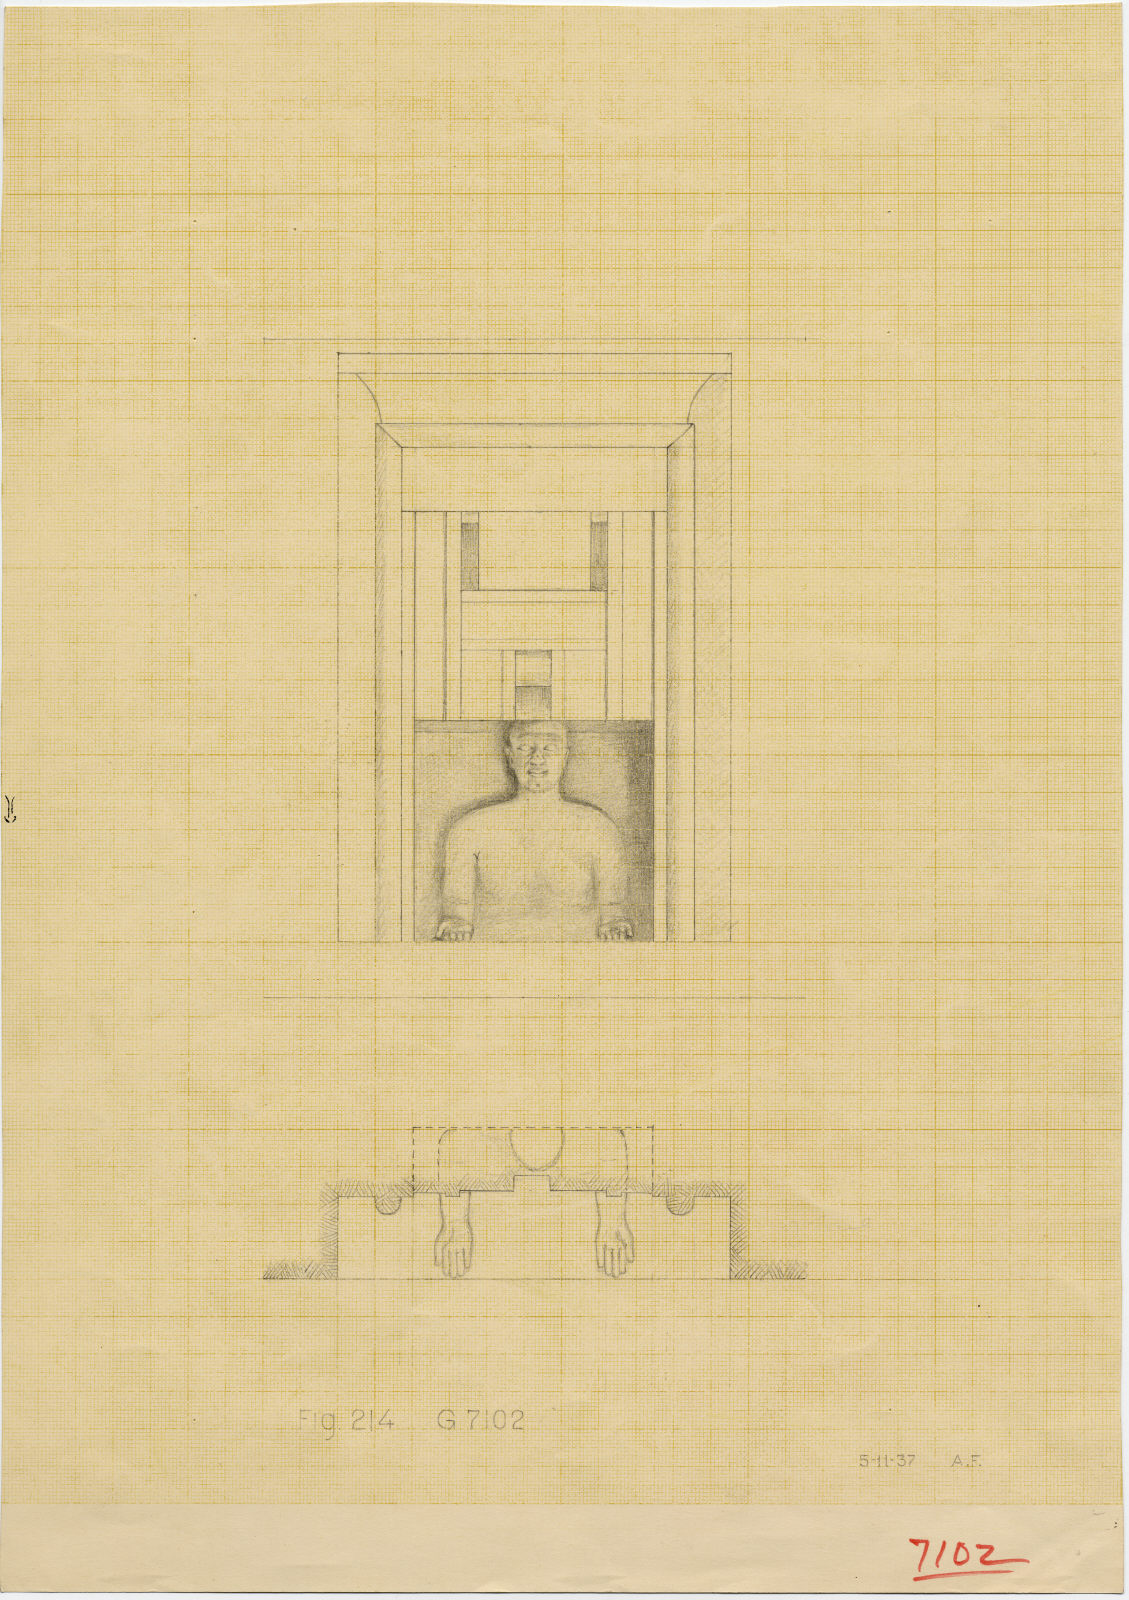 Maps and plans: G 7102: drawing (reconstruction) of false door with statue of Idu